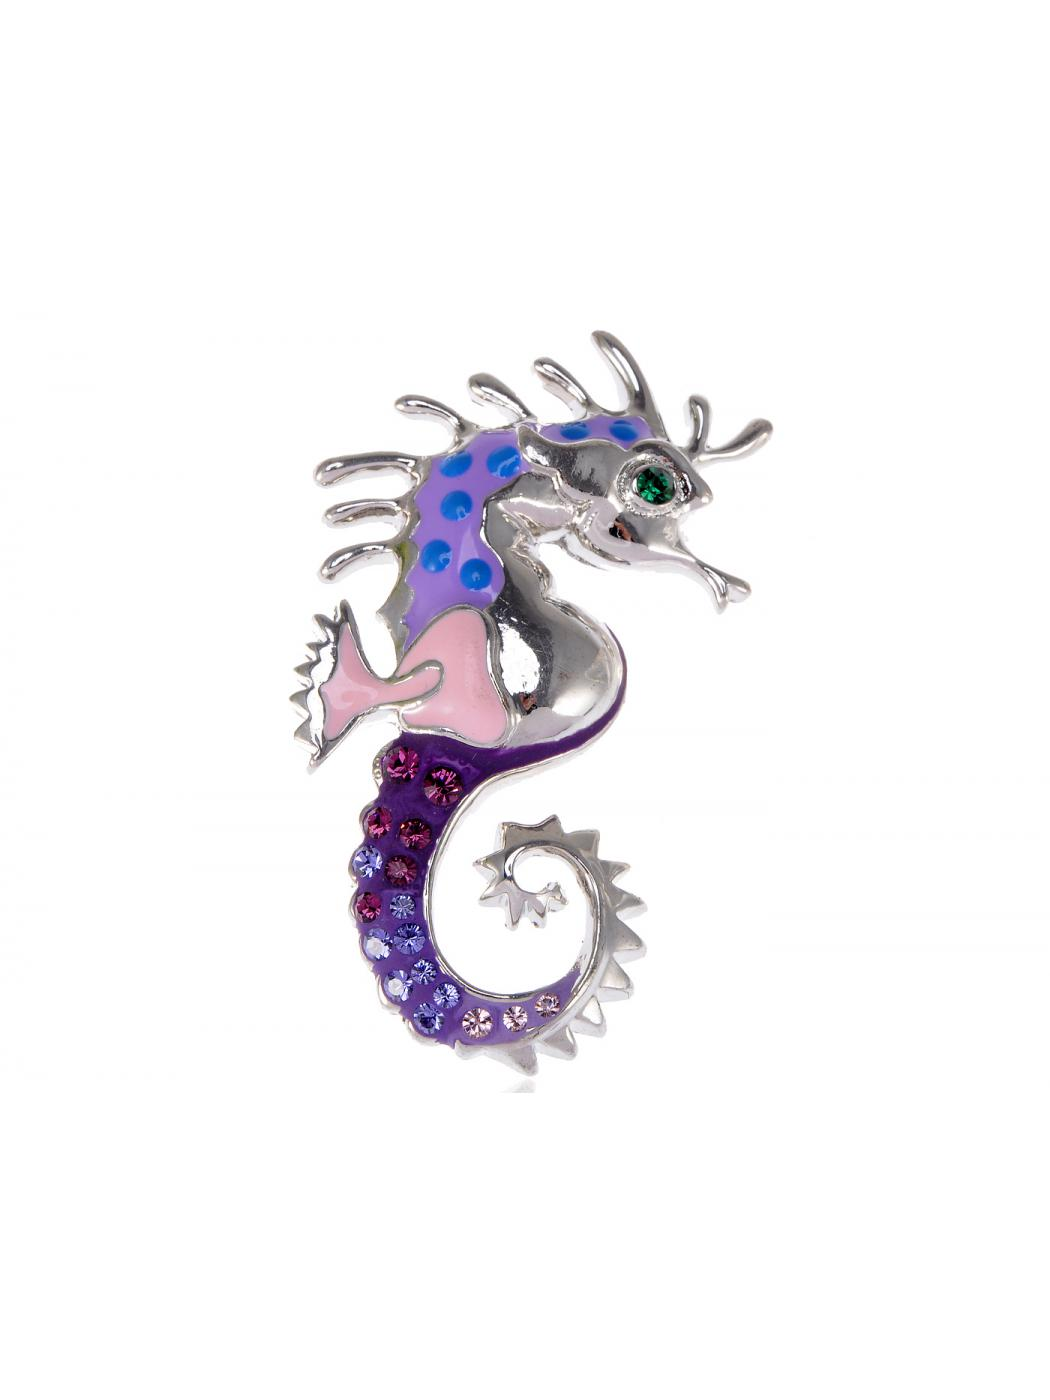 Turquoise Purple Jewel Creature Seahorse Pink Enamel Lovely Pin Brooch by